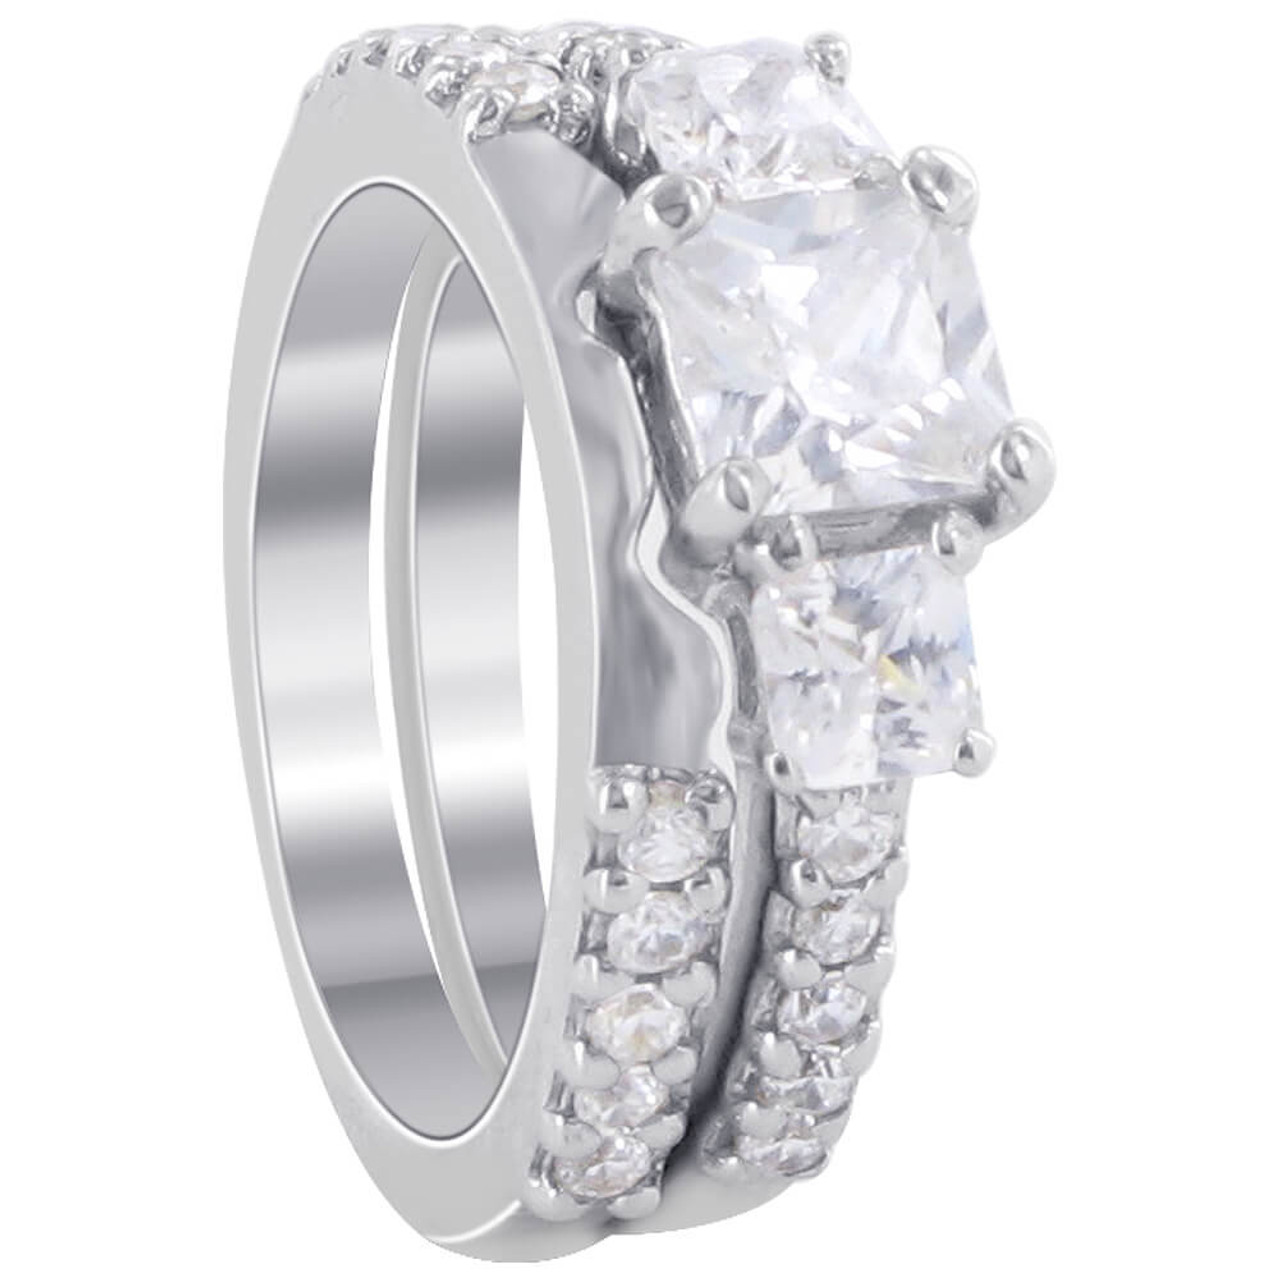 Cubic Zirconia Ring CZ Engagement Ring Sterling Silver Stacking Ring April Birthstone Gift for Her